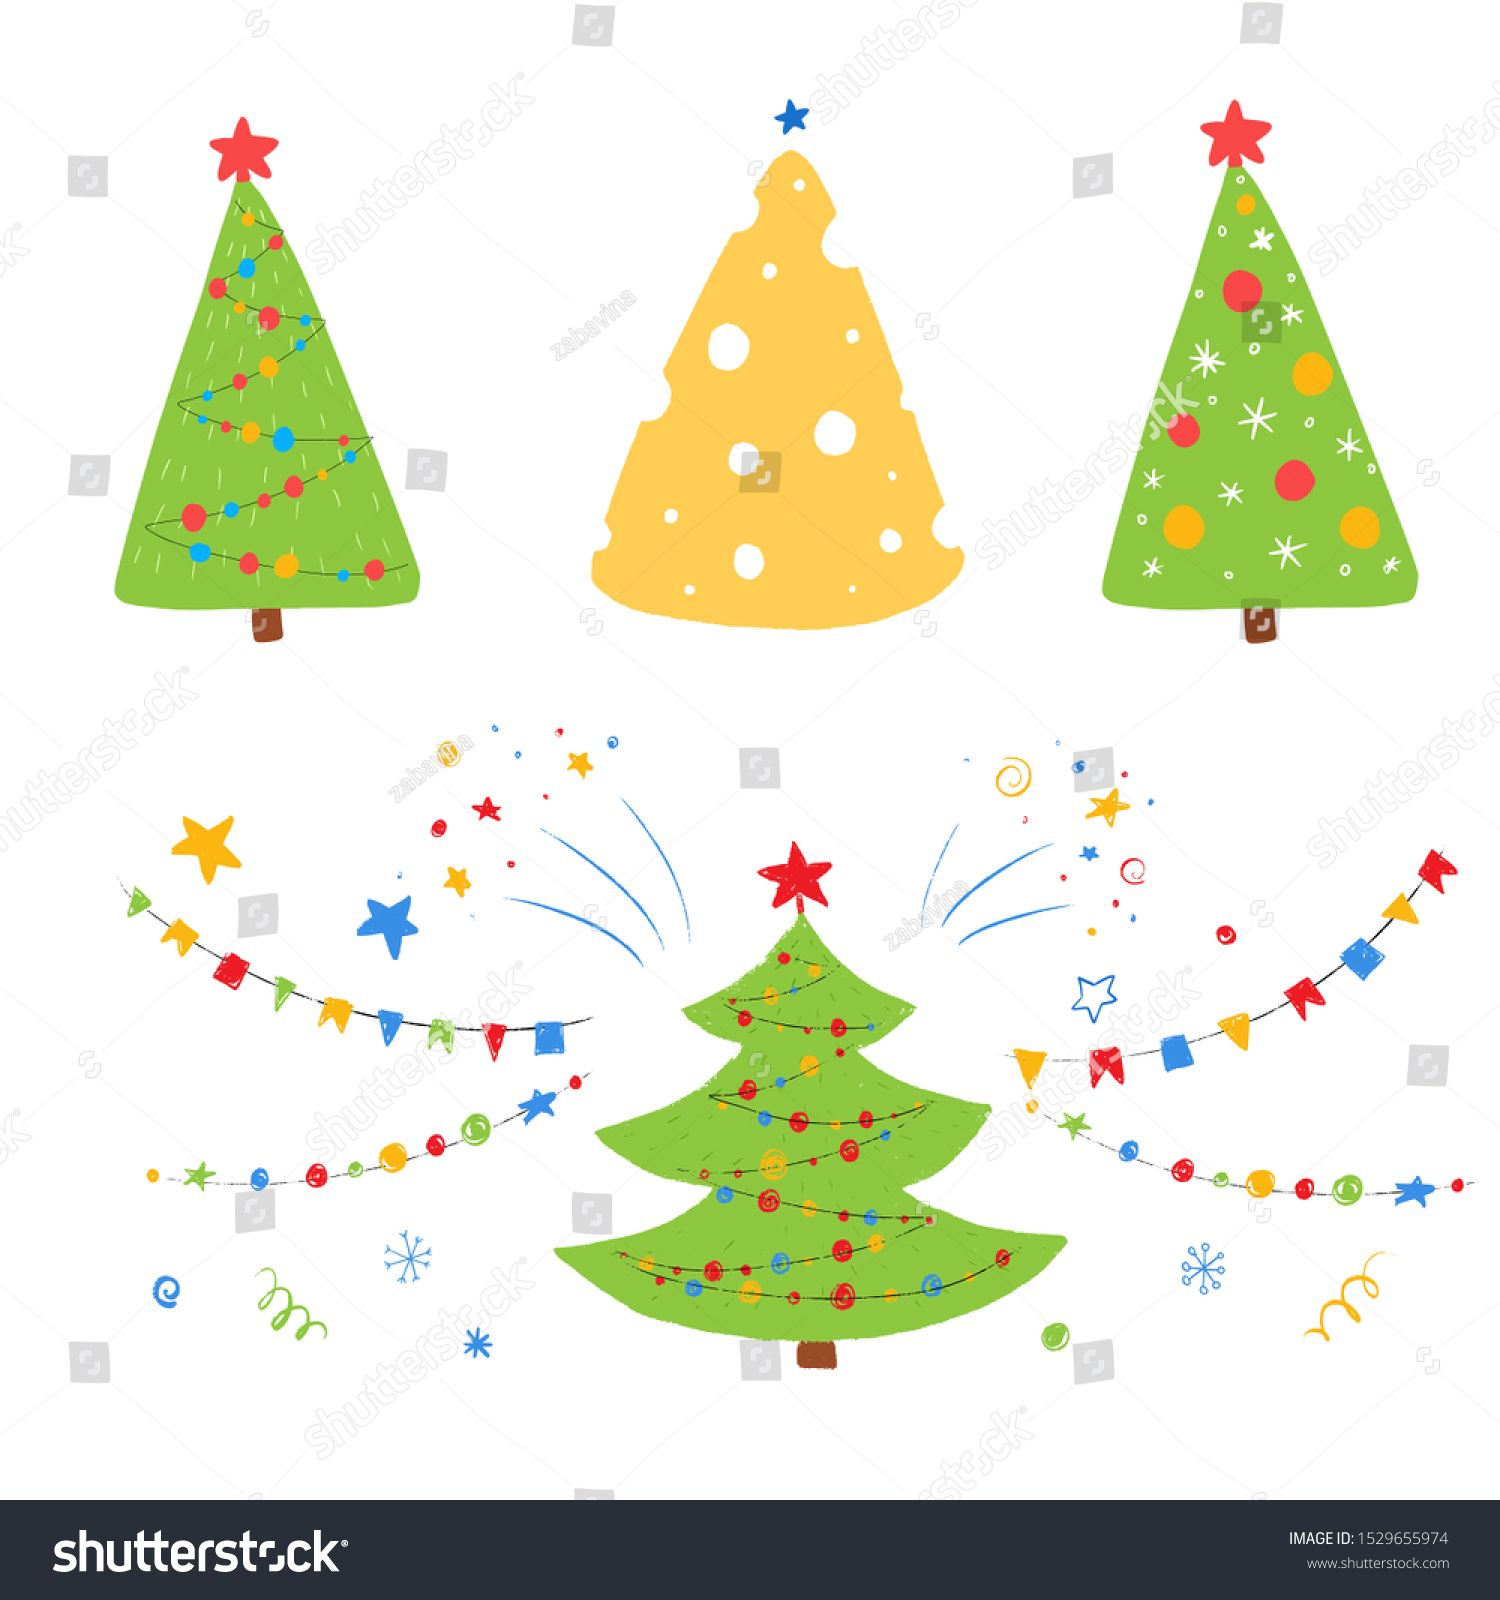 Christmas Tree Shaped Cheese Set Of Decorated Christmas Tree Vector Cartoon Holiday Illustration For K Holiday Illustrations New Years Background Tree Shapes